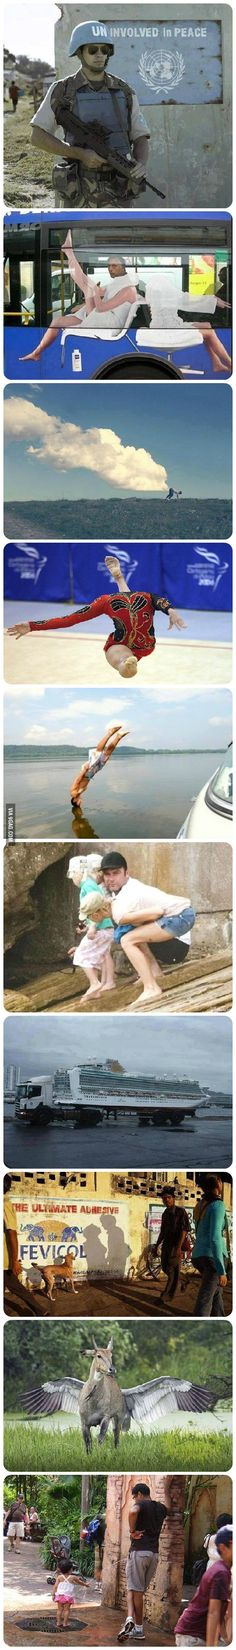 Perfectly Timed Photos - 9GAG